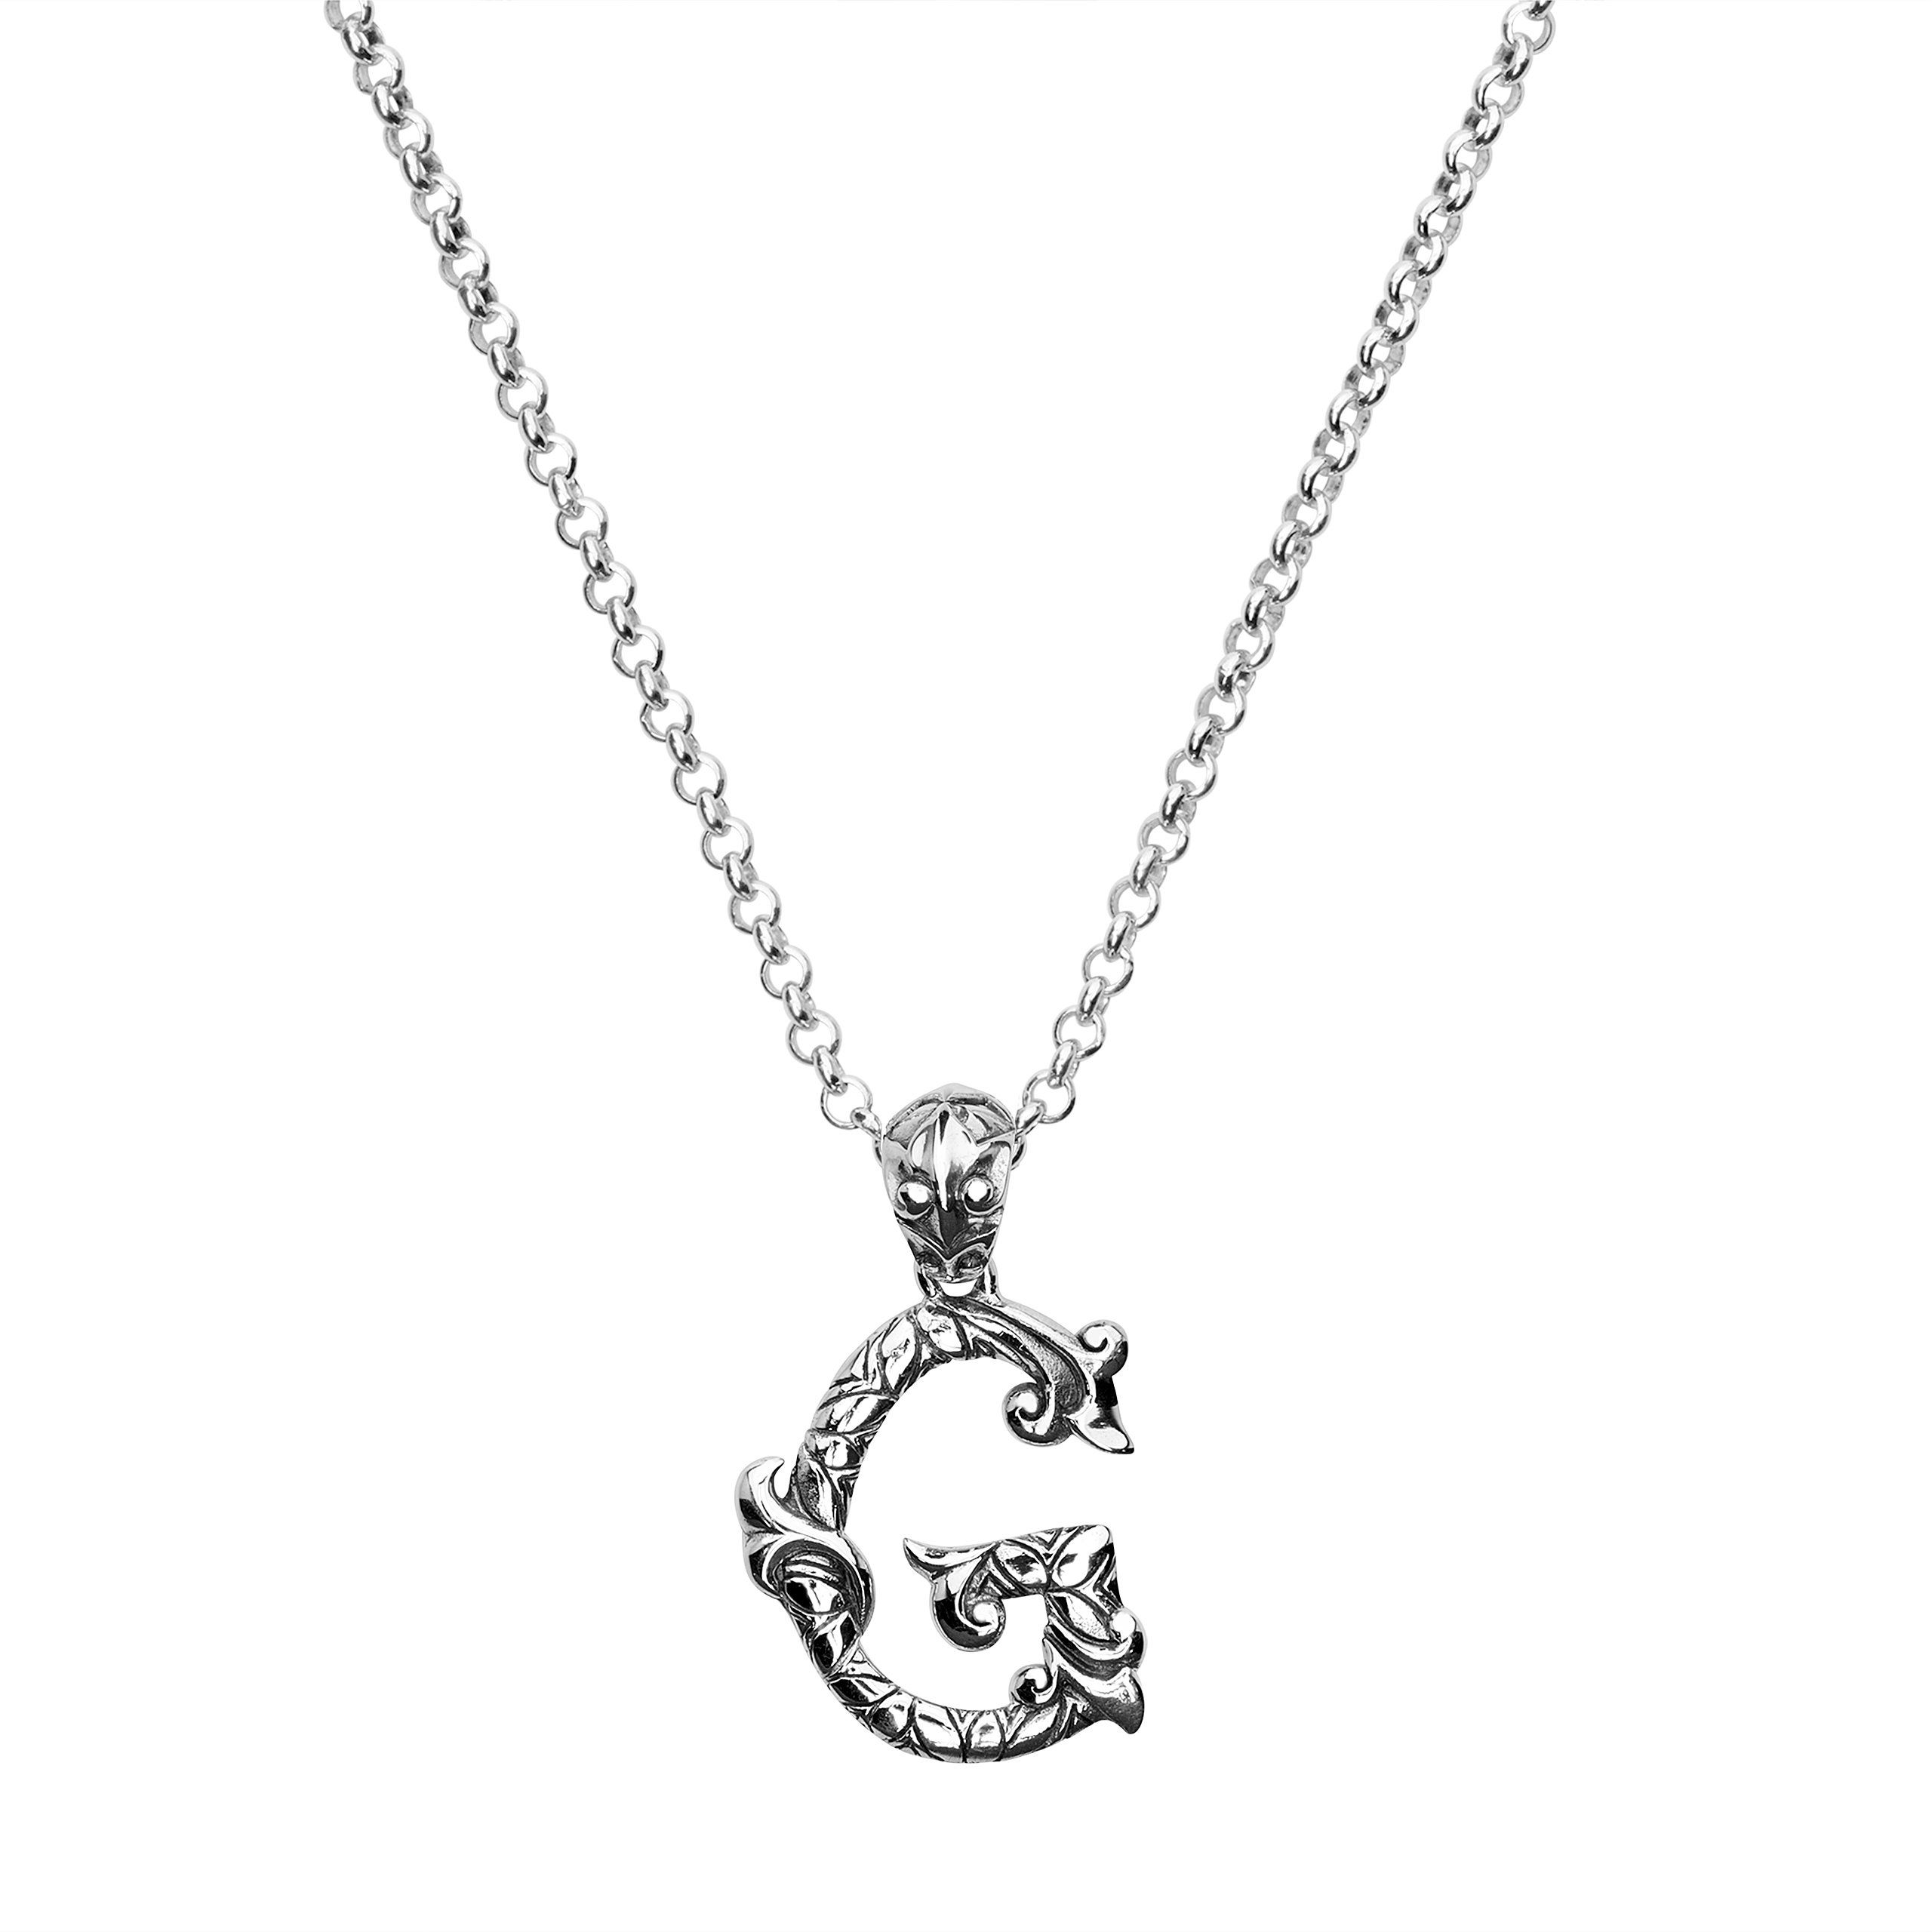 the letter catbird necklaces enlarged full jewelry necklace products heart pendant initial g